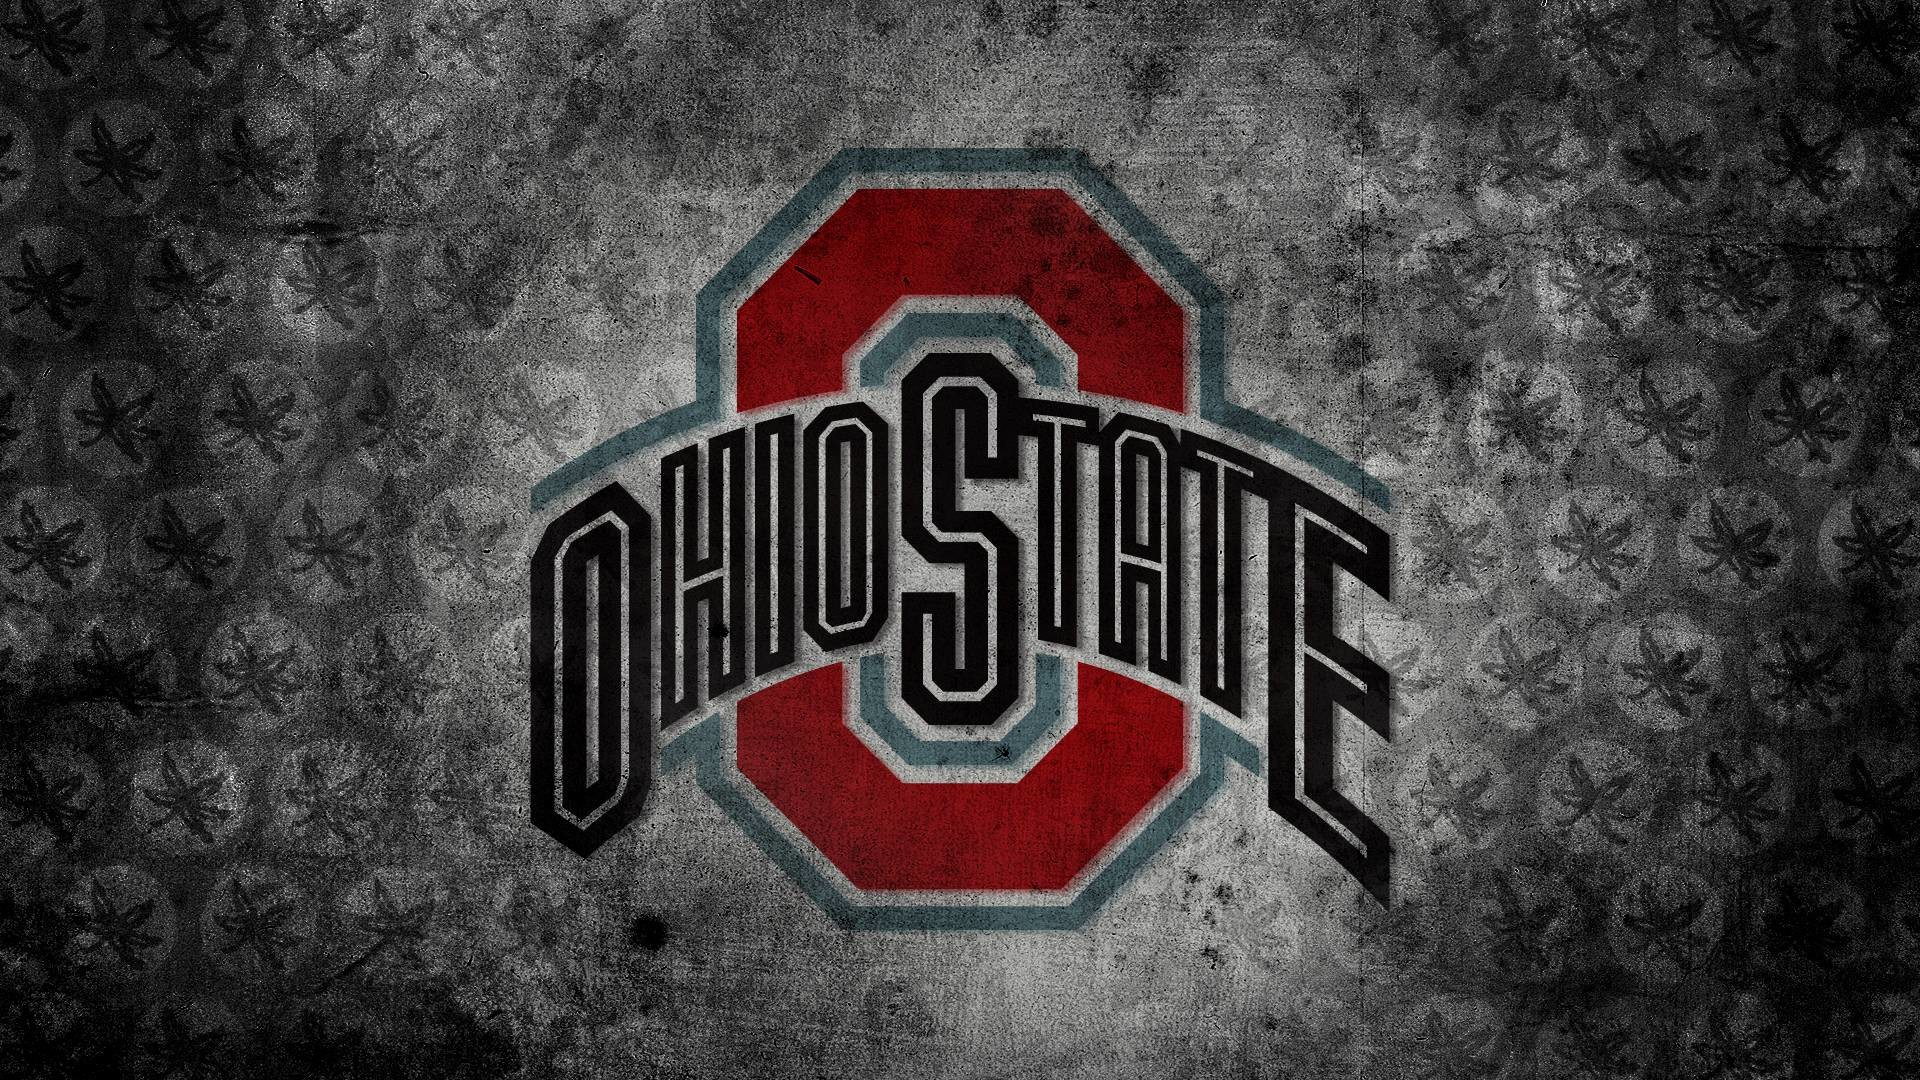 1920x1080 Link Dump: 10 Awesome Ohio State Buckeyes Computer Desktop .